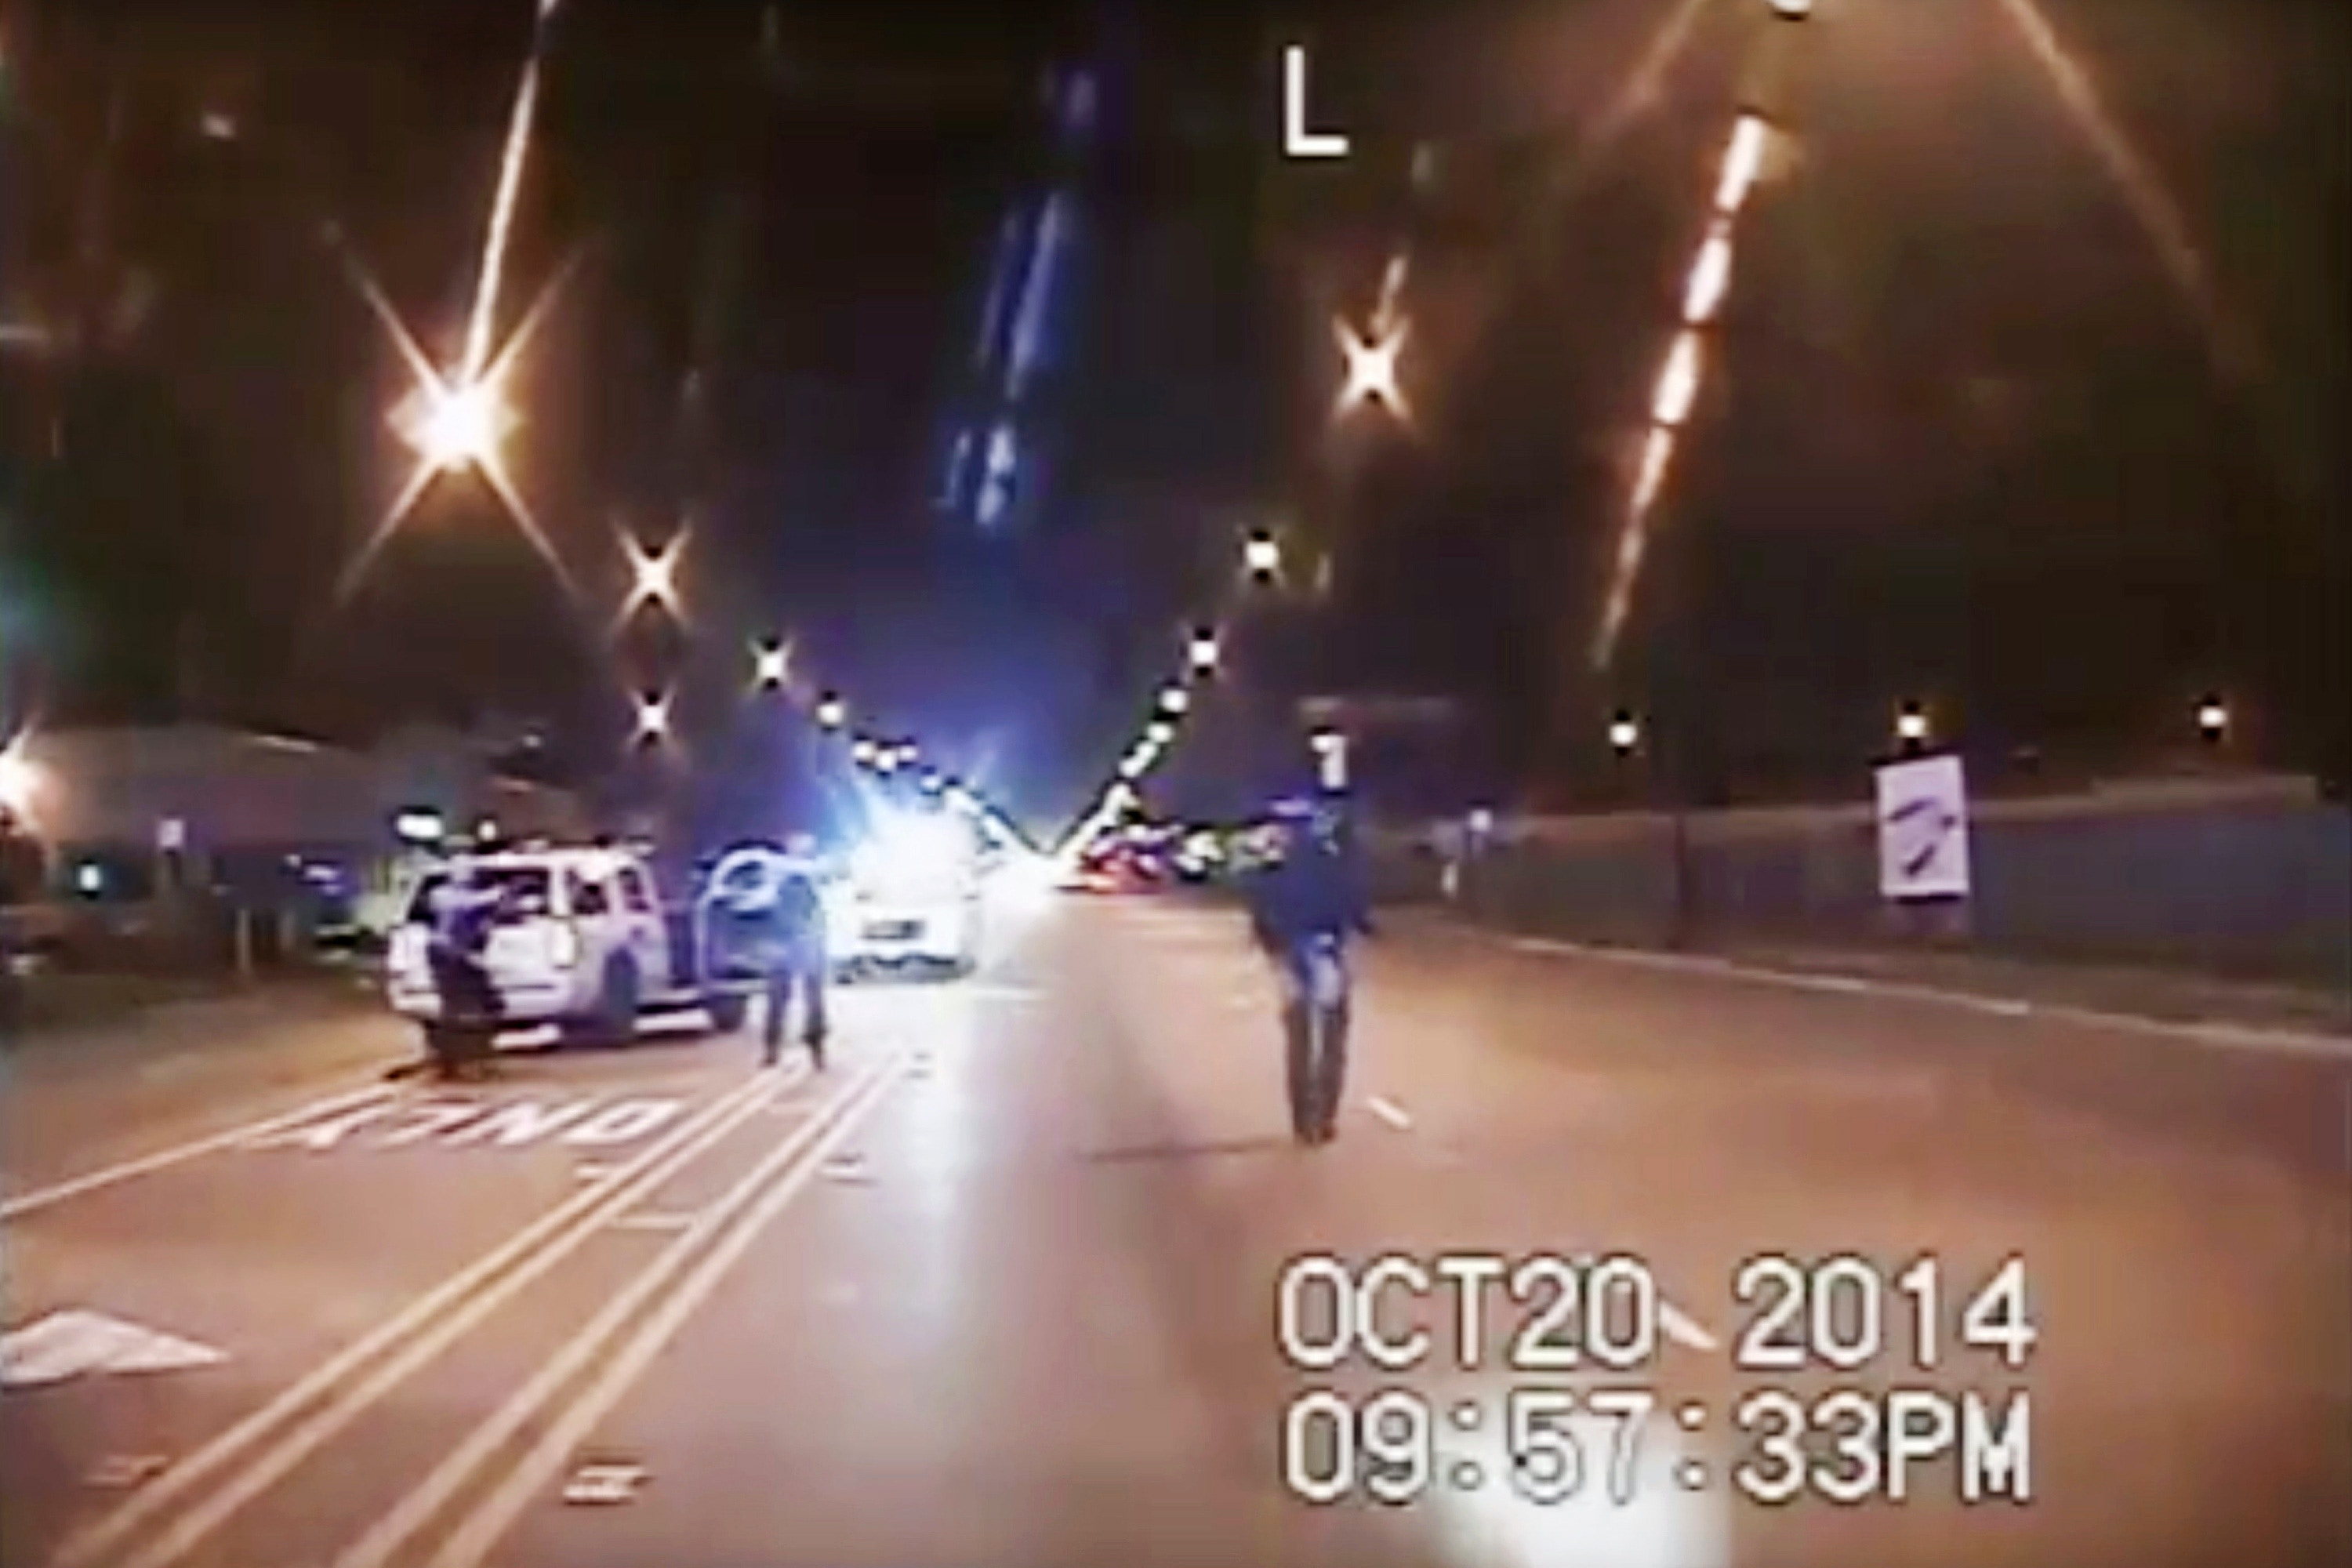 "FILE - In this Oct. 20, 2014 file image taken from dash-cam video provided by the Chicago Police Department, Laquan McDonald, right, walks down the street moments before being fatally shot by Chicago Police officer Jason Van Dyke in Chicago. After days of prosecutors making their case to jurors that Van Dyke committed first-degree murder when he shot the black teenager 16 times, Van Dyke's attorneys are presenting their own evidence. And almost immediately their strategy became clear: The teenager was a violent, dangerous, knife-wielding suspect ""on ""a rampage"" that Van Dyke was forced to kill. (Chicago Police Department via AP, File)"